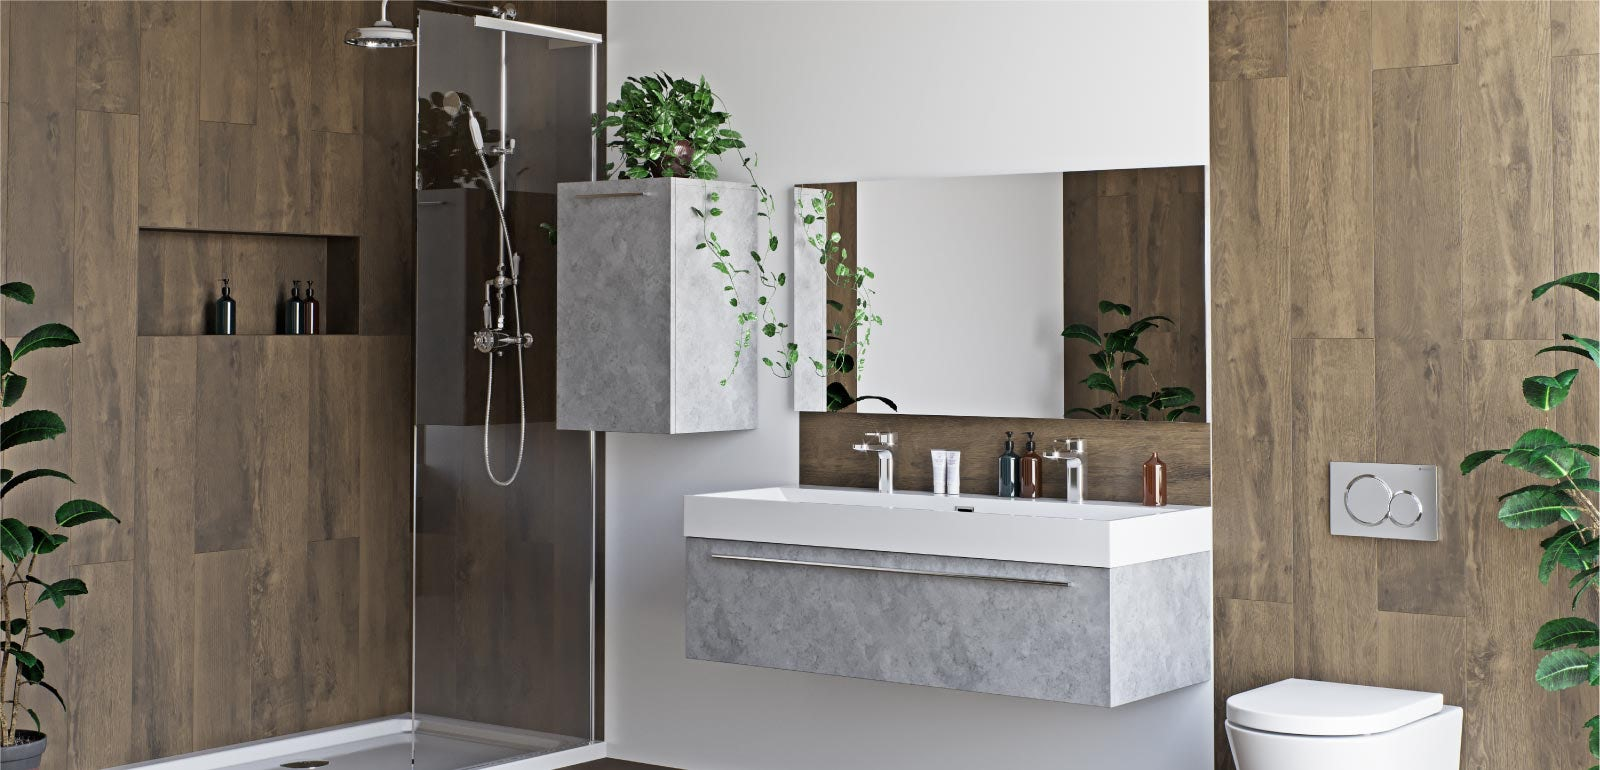 7 stunning contemporary bathroom ideas for 2020